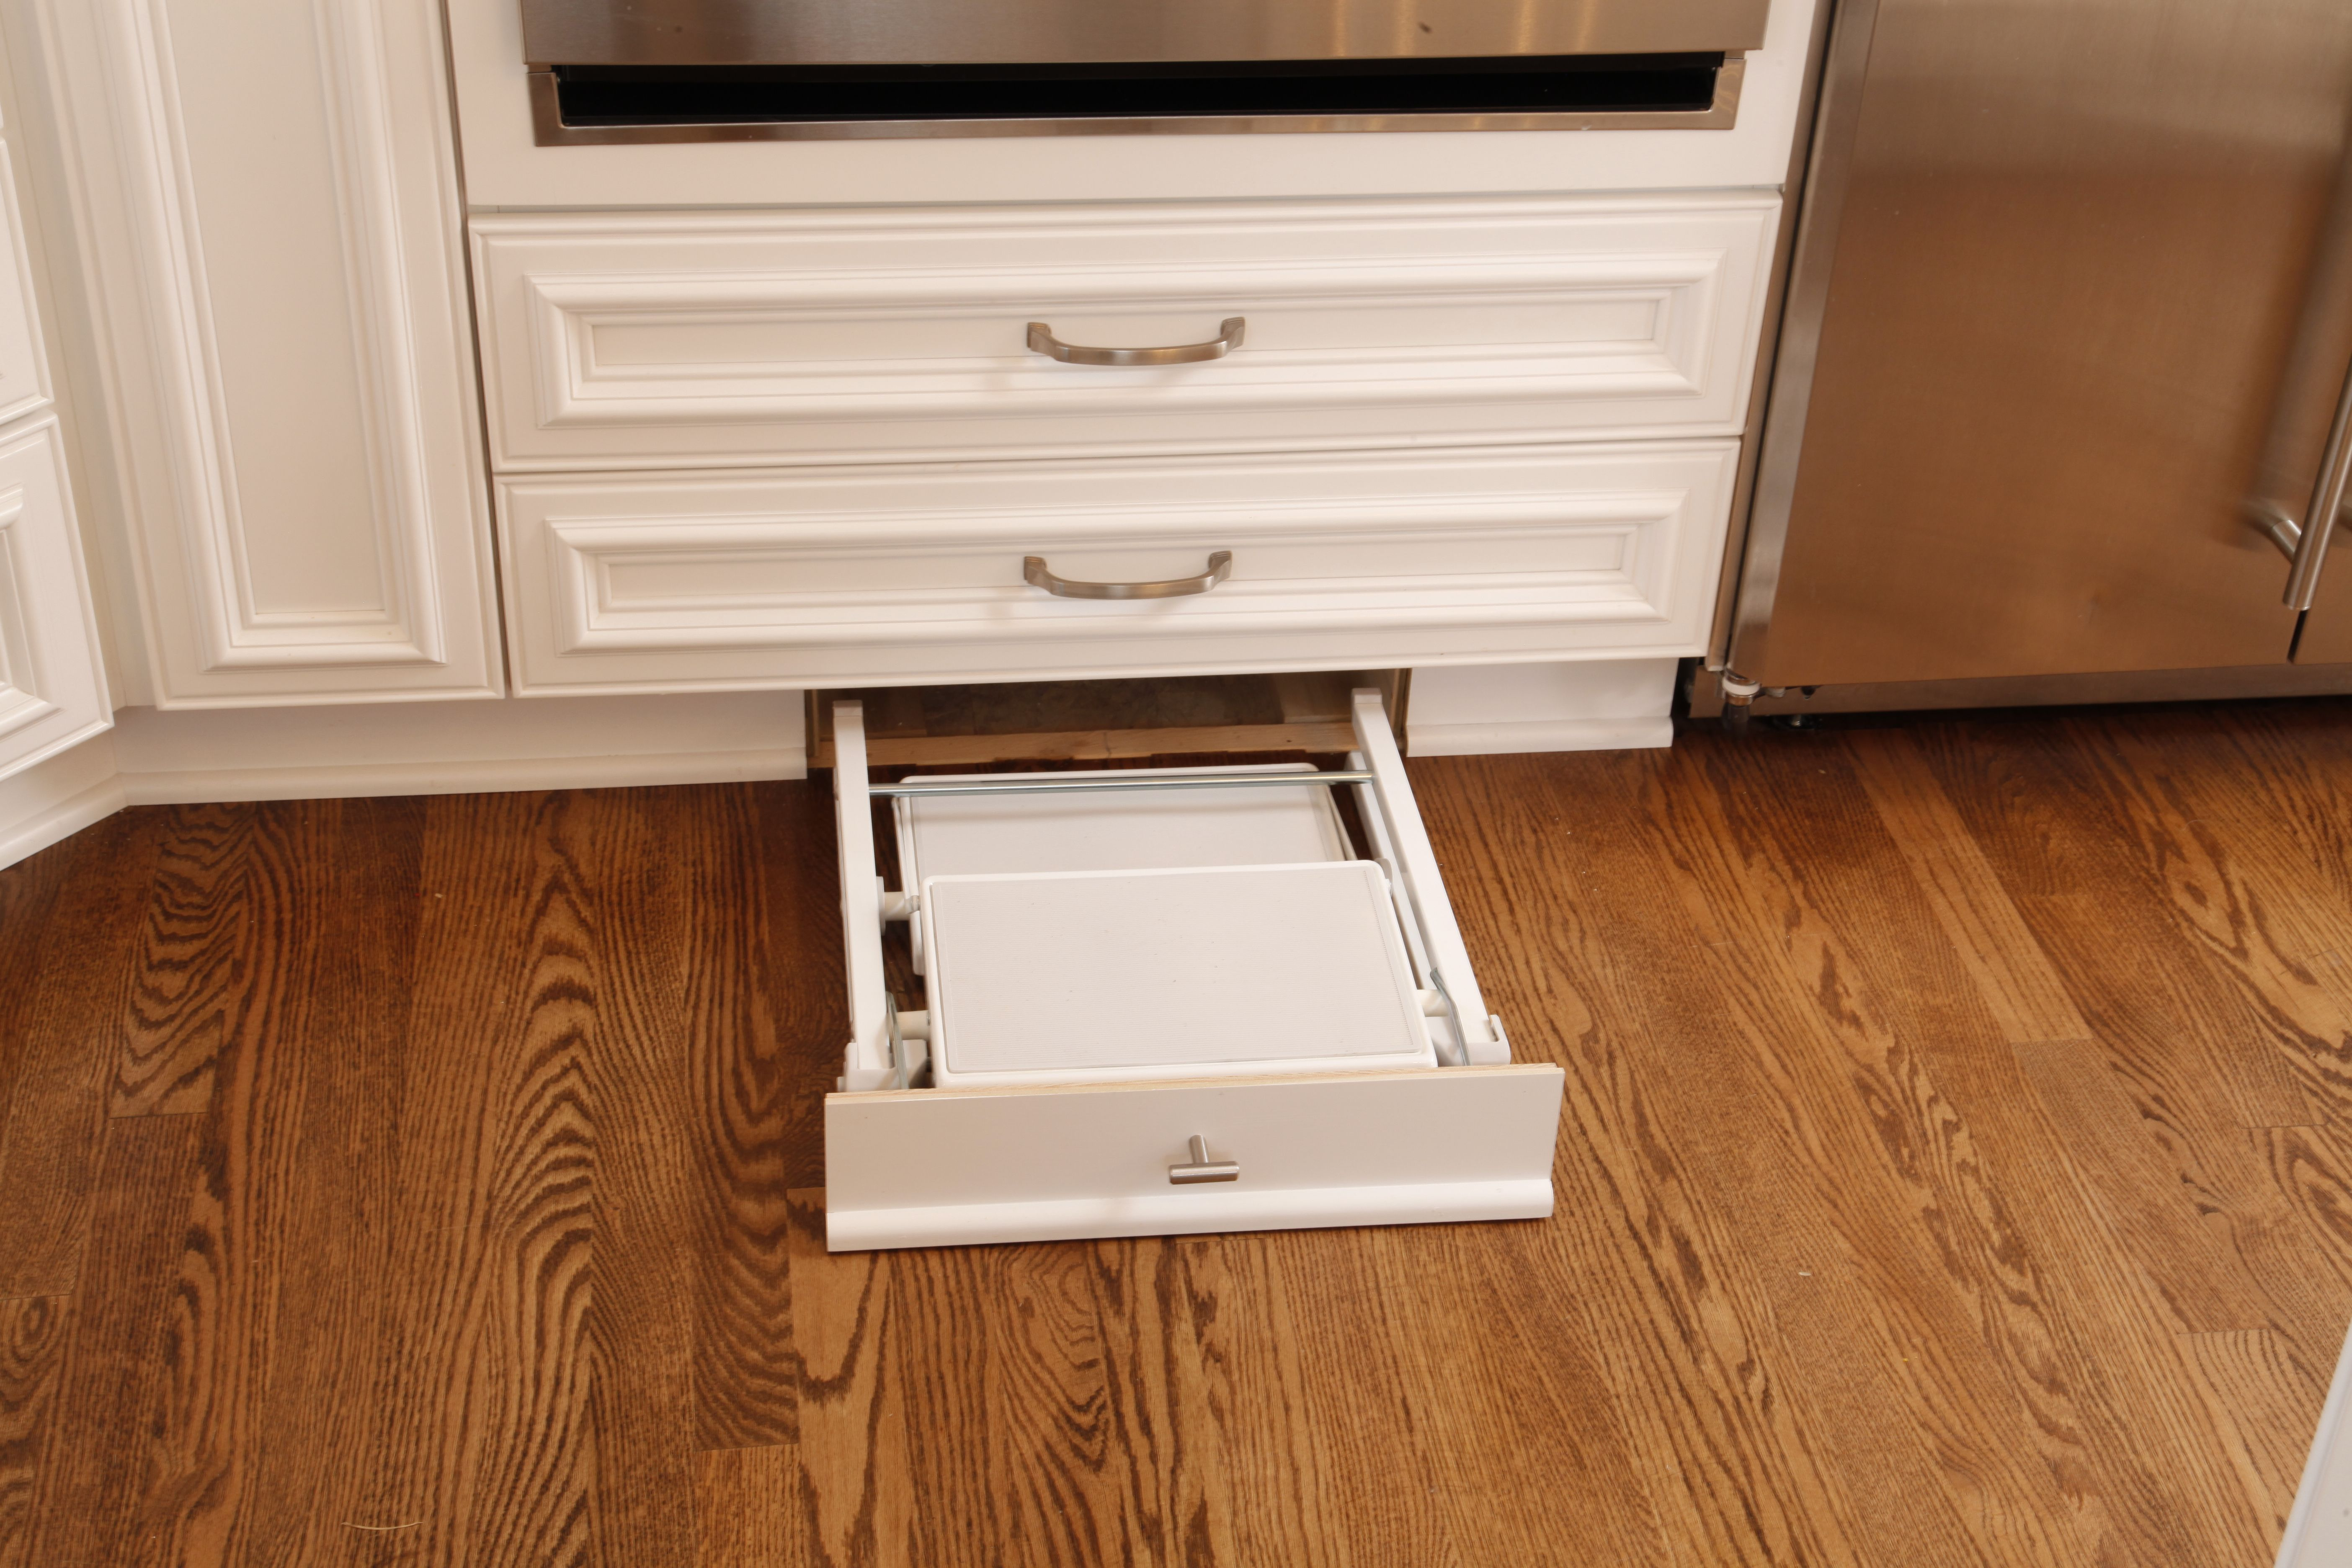 Toe kick step stool that unfolds and wheels around to ...